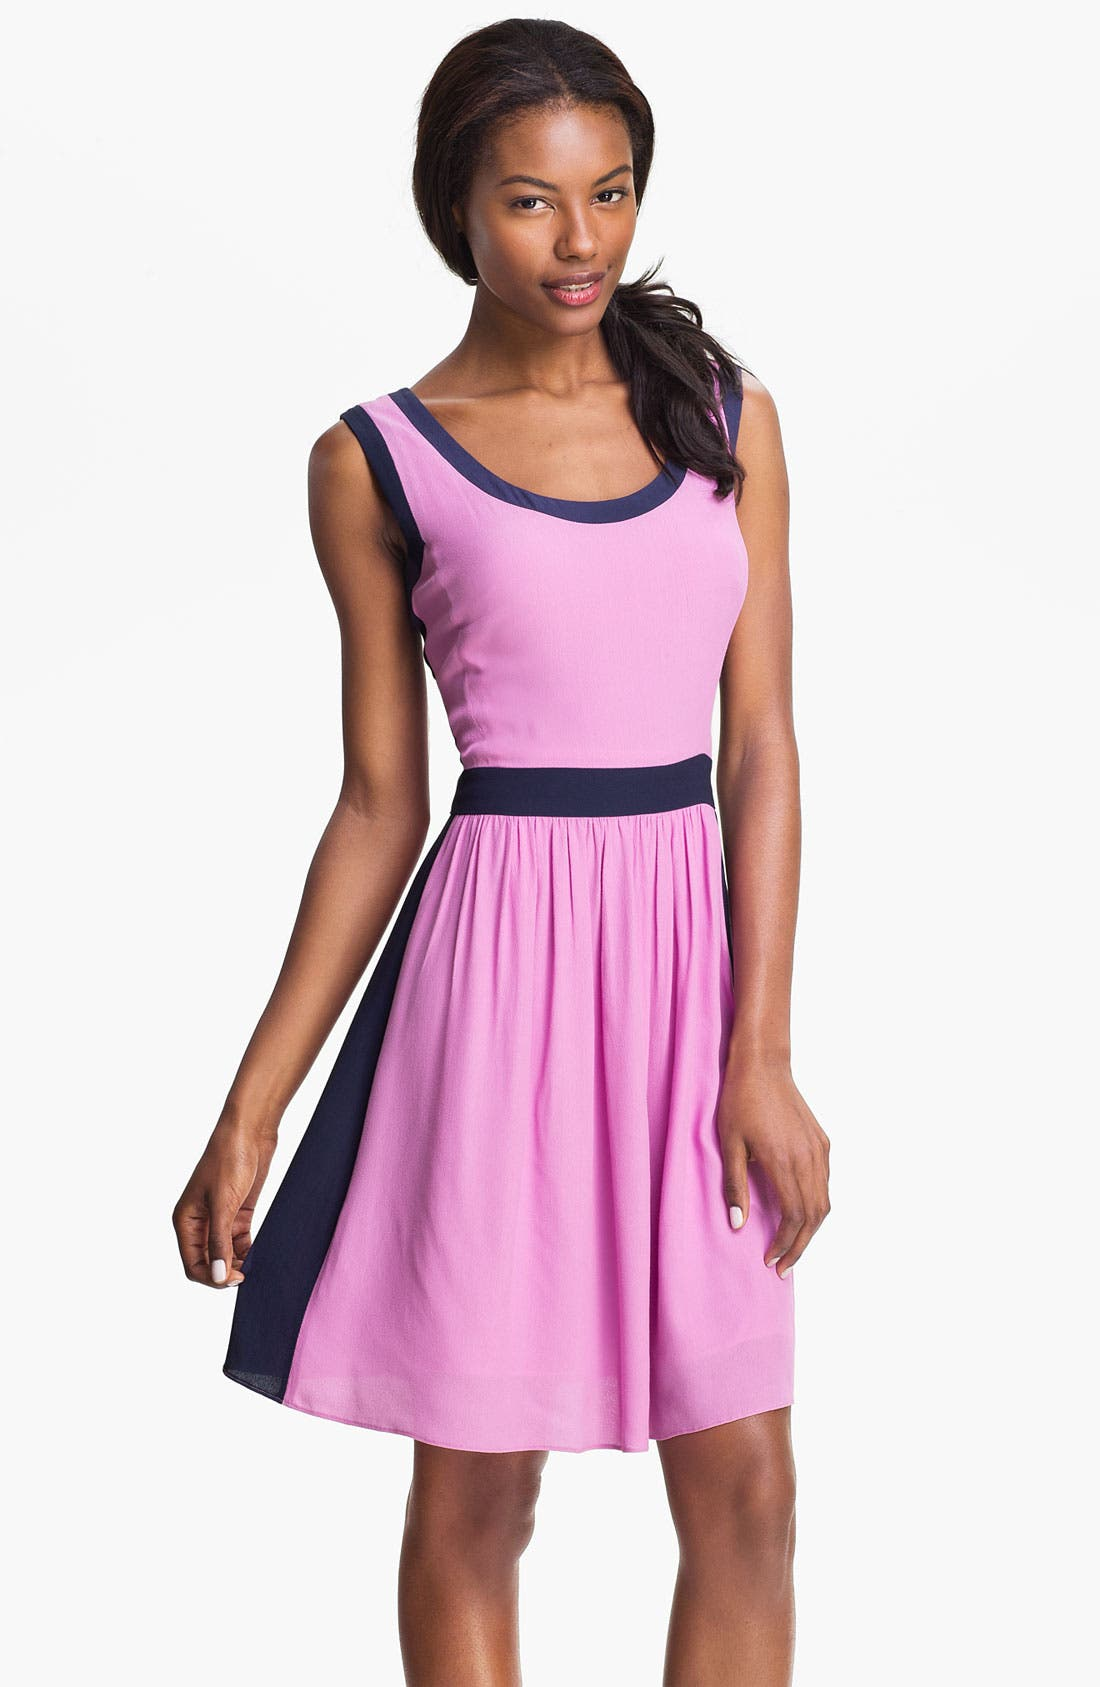 Alternate Image 1 Selected - Lilly Pulitzer® 'Irene' Contrast Panel Dress